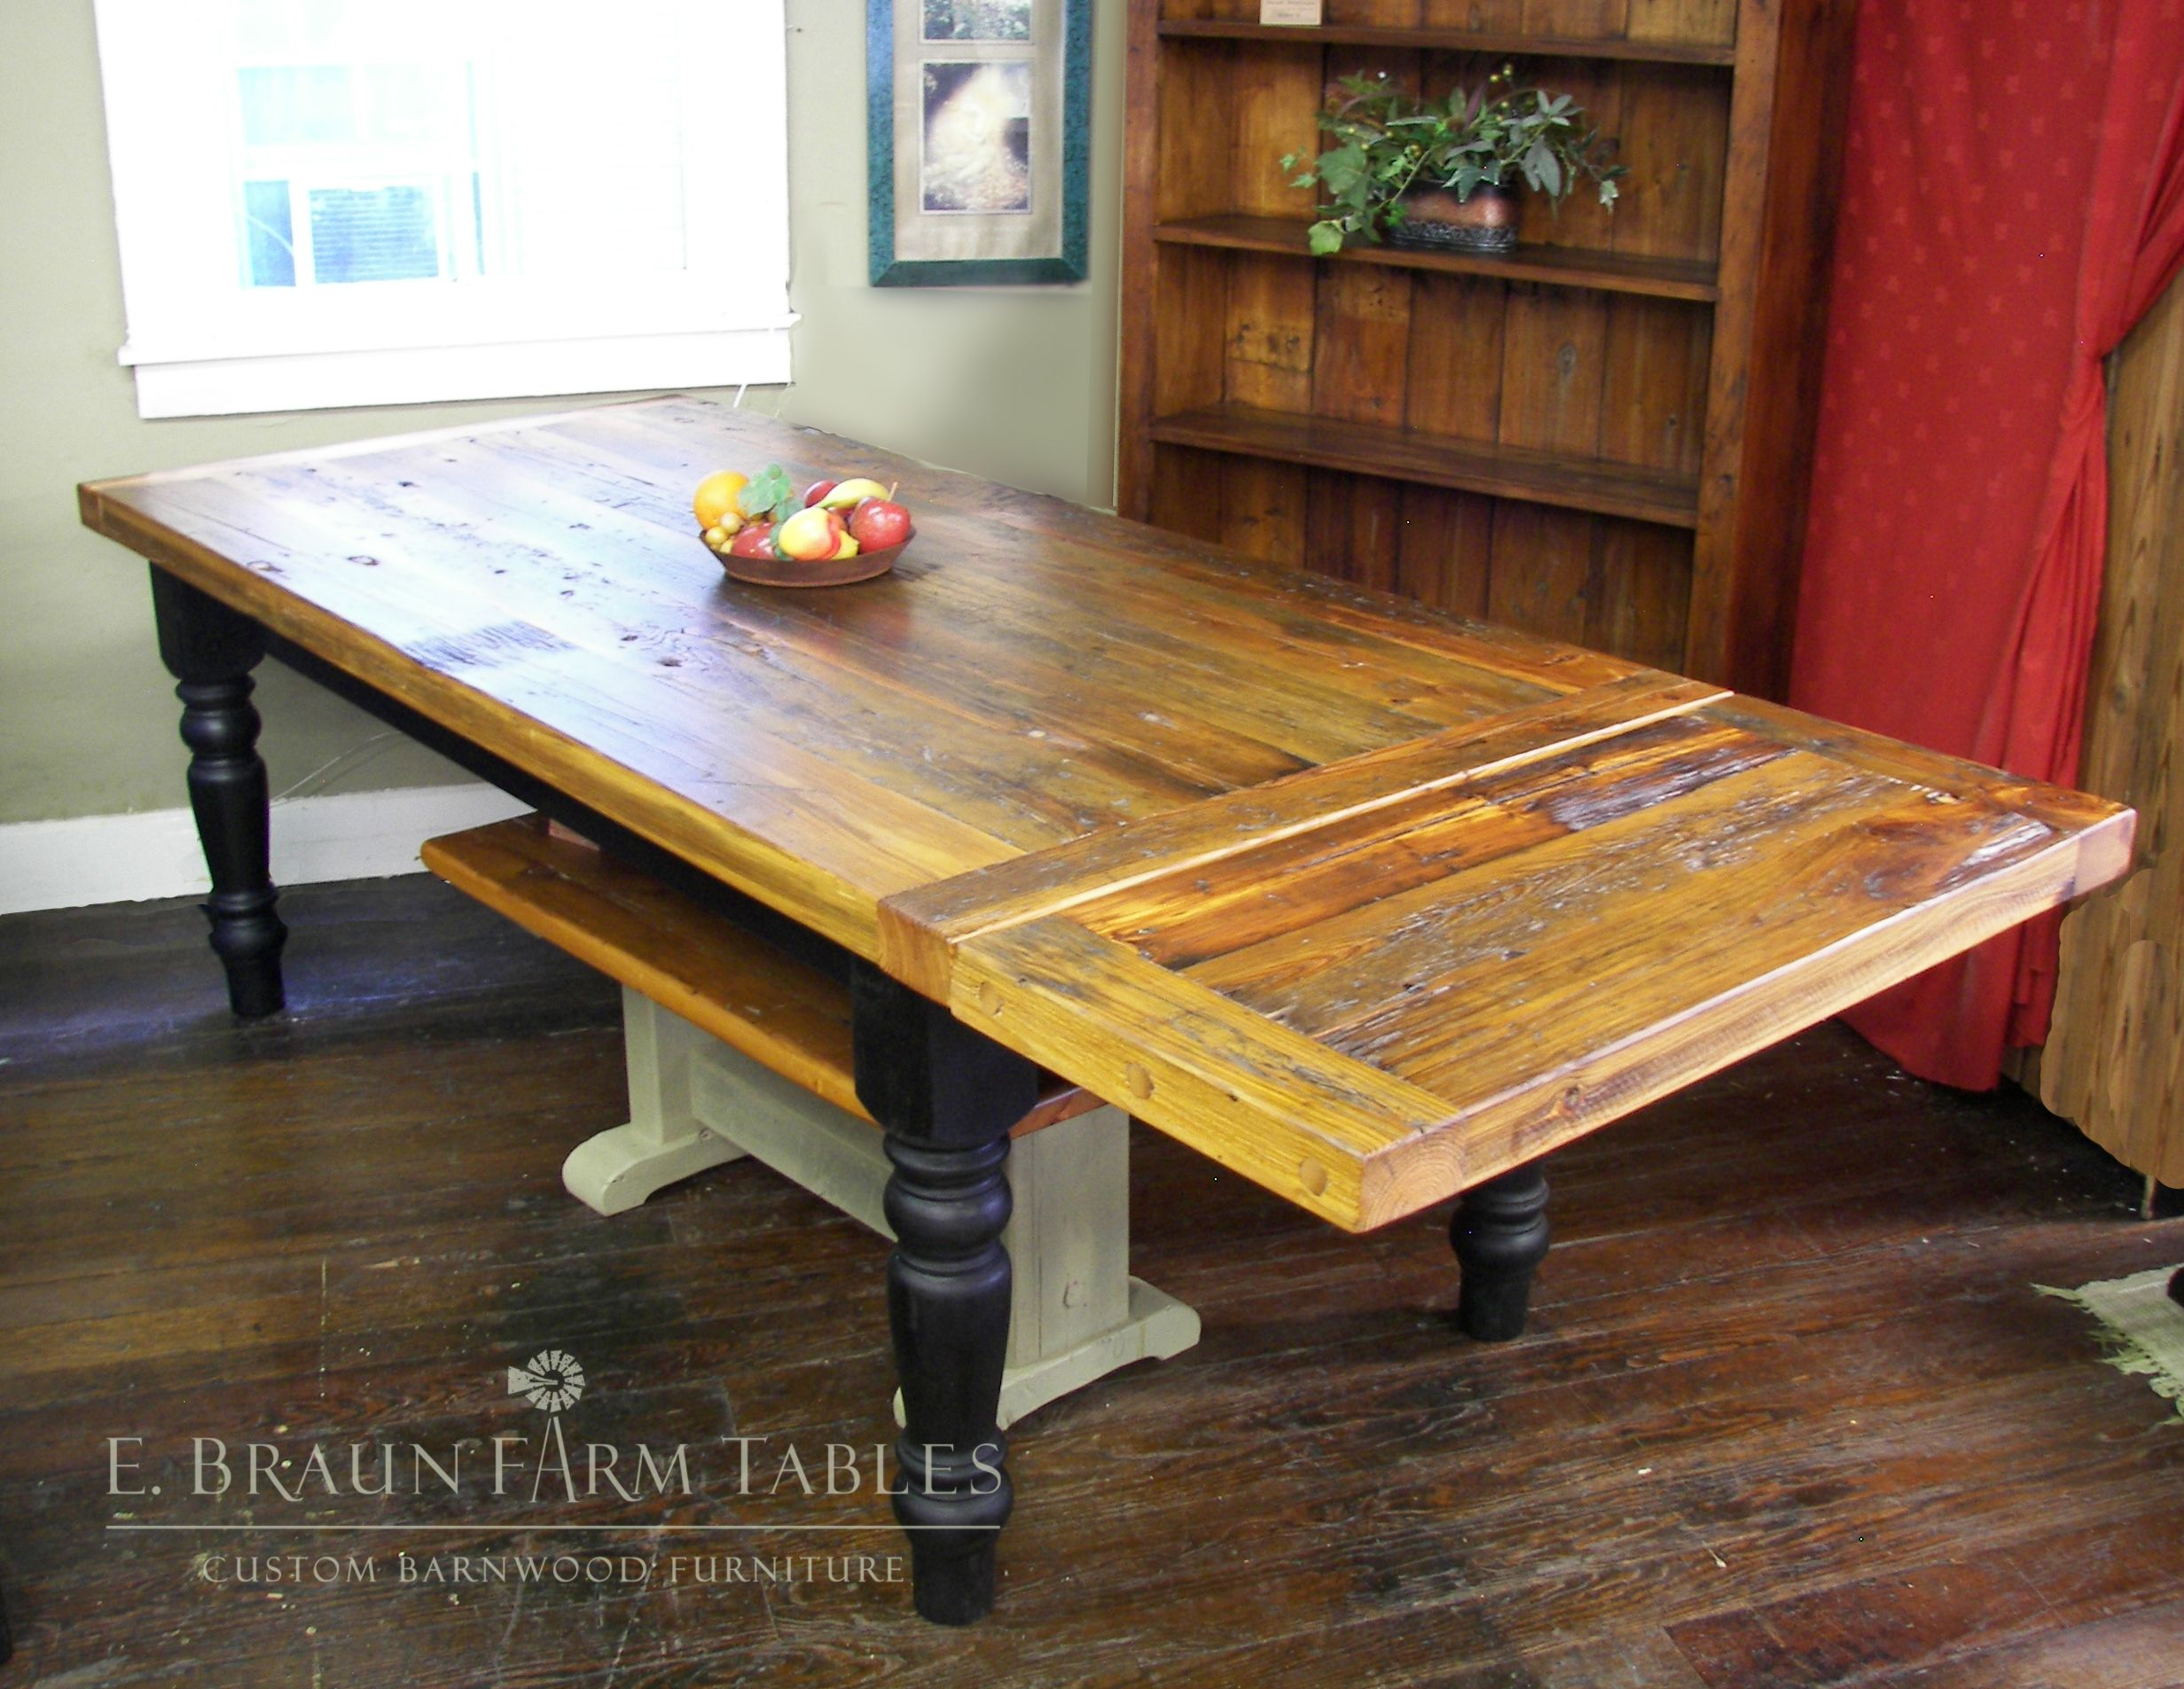 Reclaimed yellow pine farm table with company board  : 68d9102cc0a2bfd6f1c503399b689627 from www.pinterest.com size 2463 x 1905 jpeg 2512kB